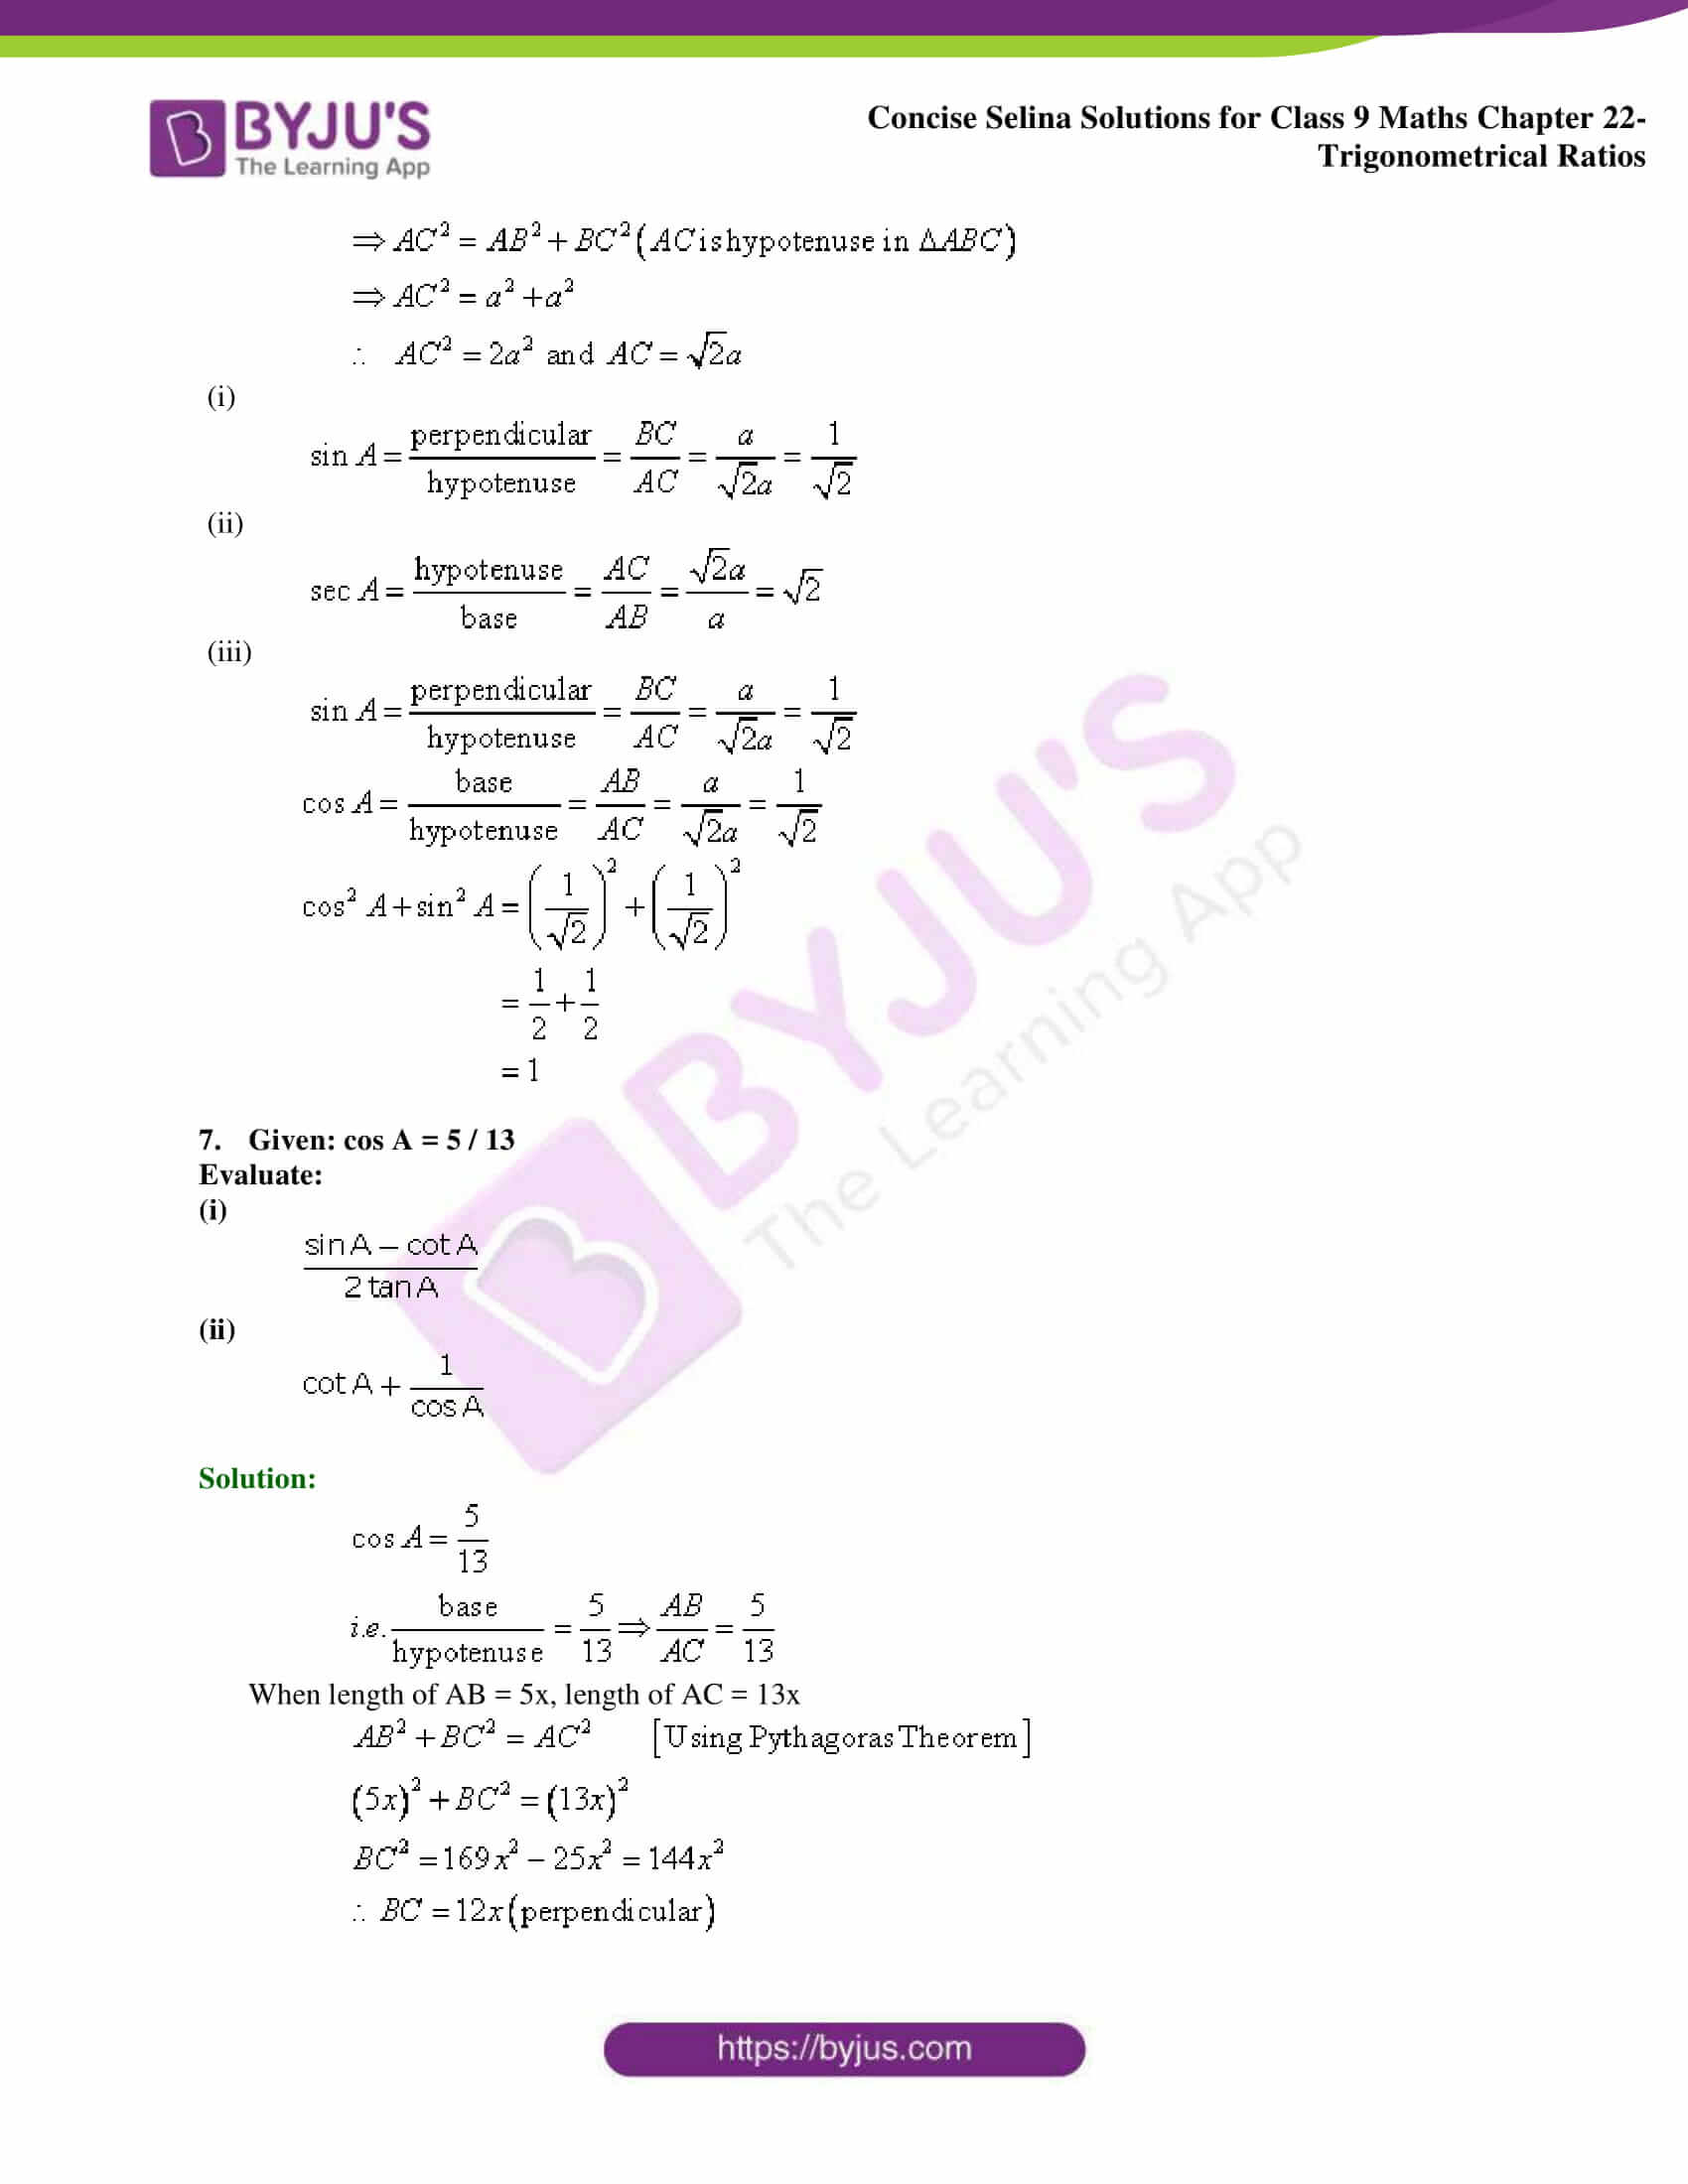 Concise Selina Solutions Class 9 Maths Chapter 22 Trigonometrical Ratios part 08